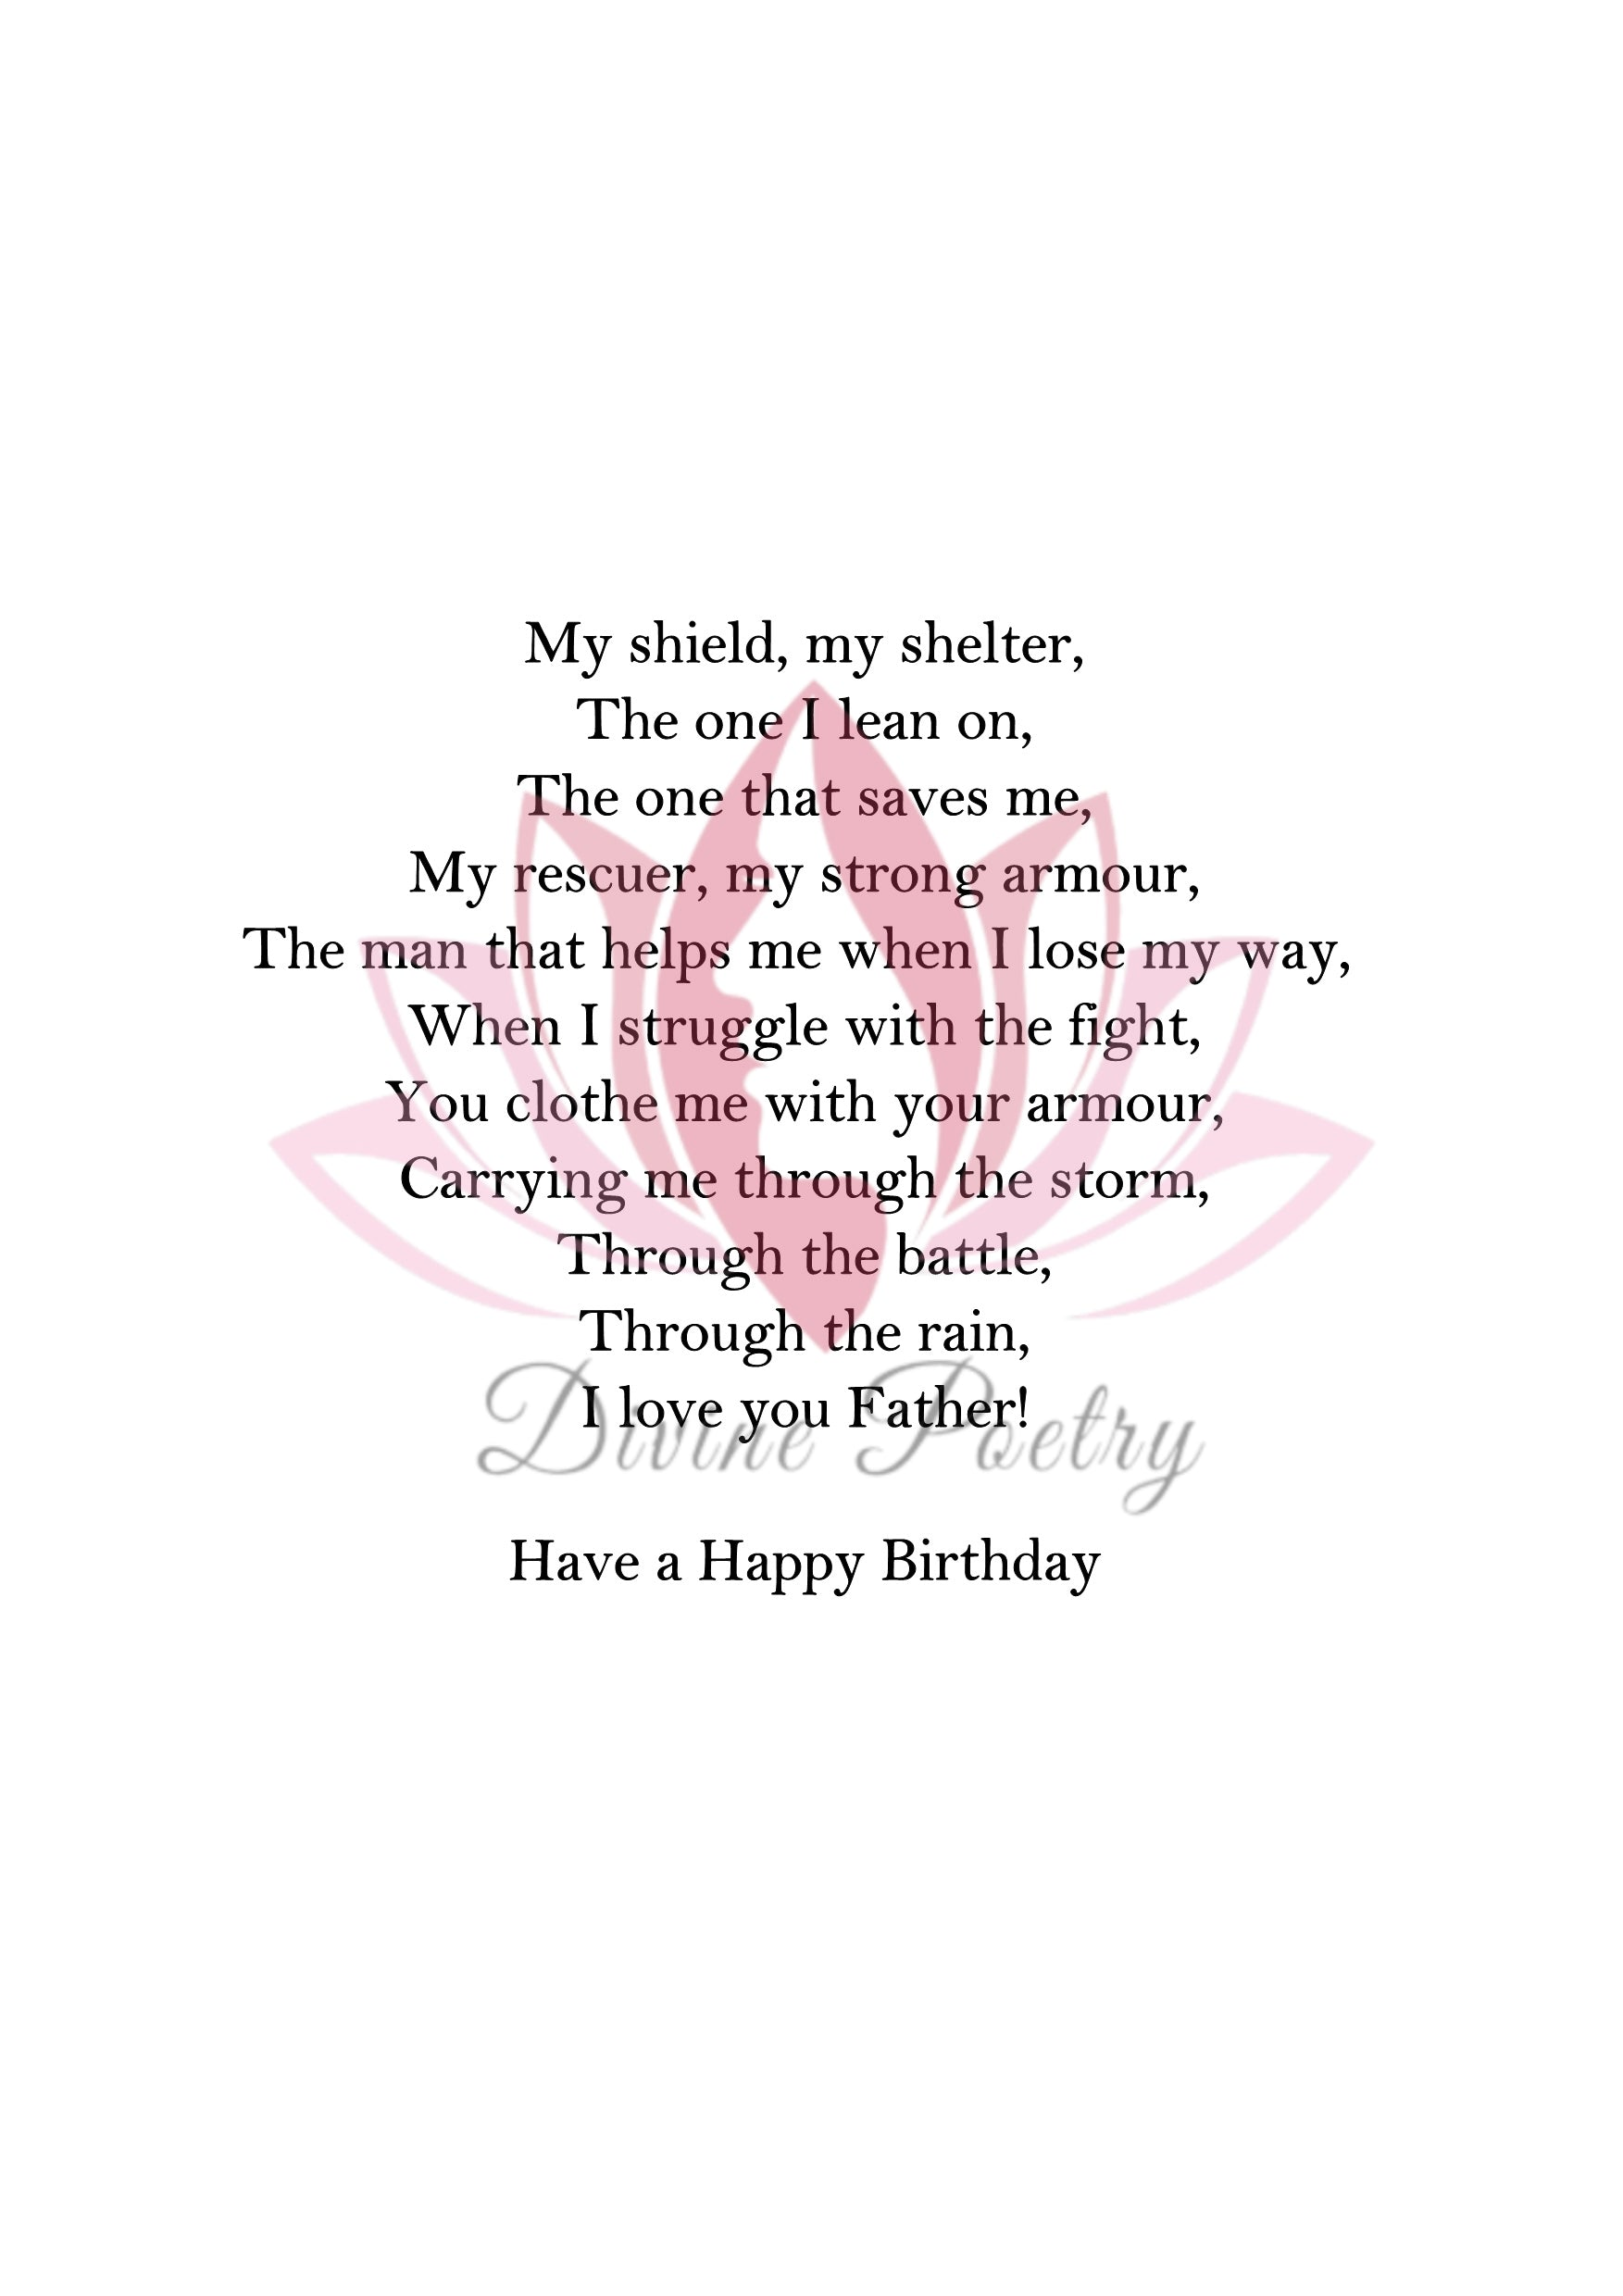 Happy Birthday Stepfather - Divine Poetry